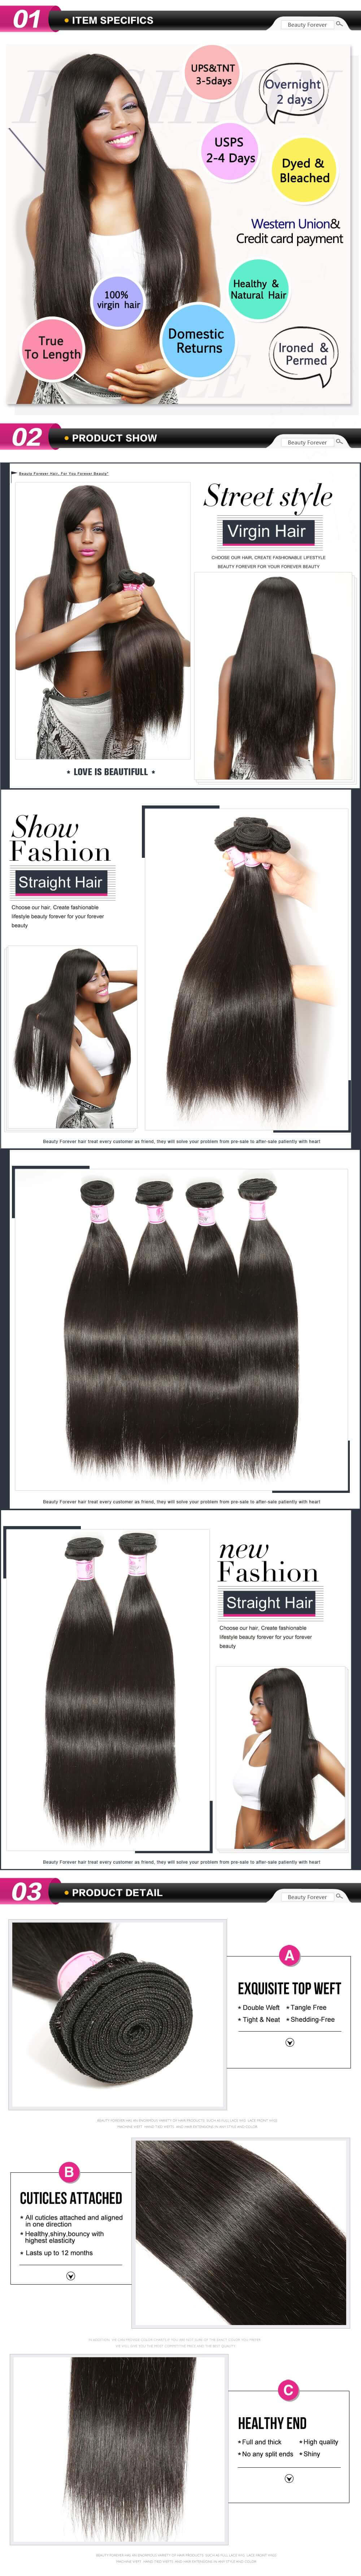 straight hair bundles 8-30 inches